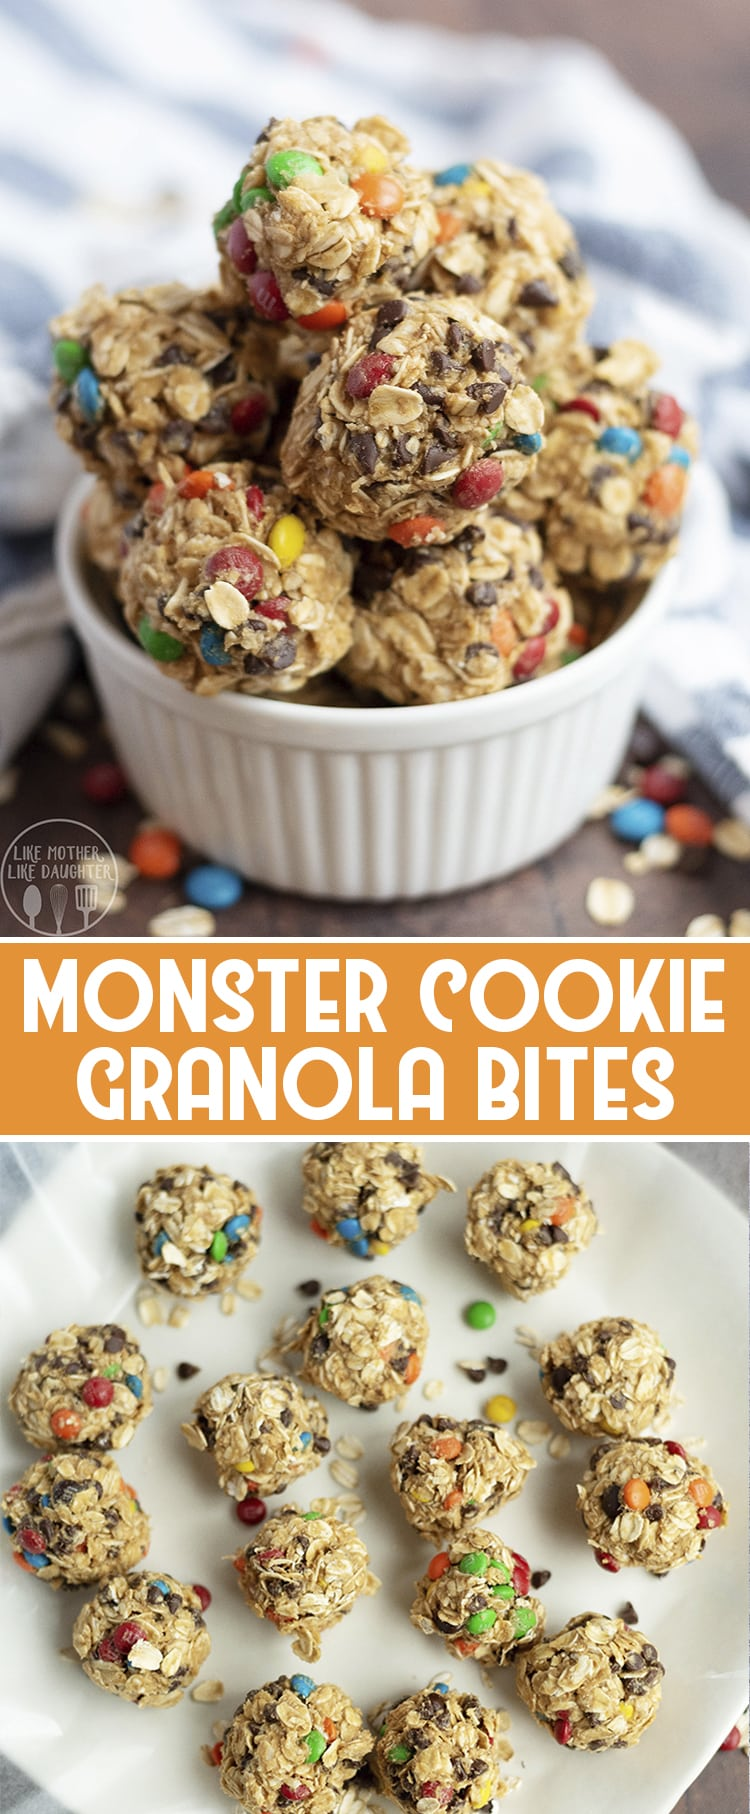 These no bake monster cookie granola bites are a delicious treat with the same great taste of monster cookies, with no flour, eggs, or added white sugar. They're perfect for a quick healthier snack when you need something sweet!